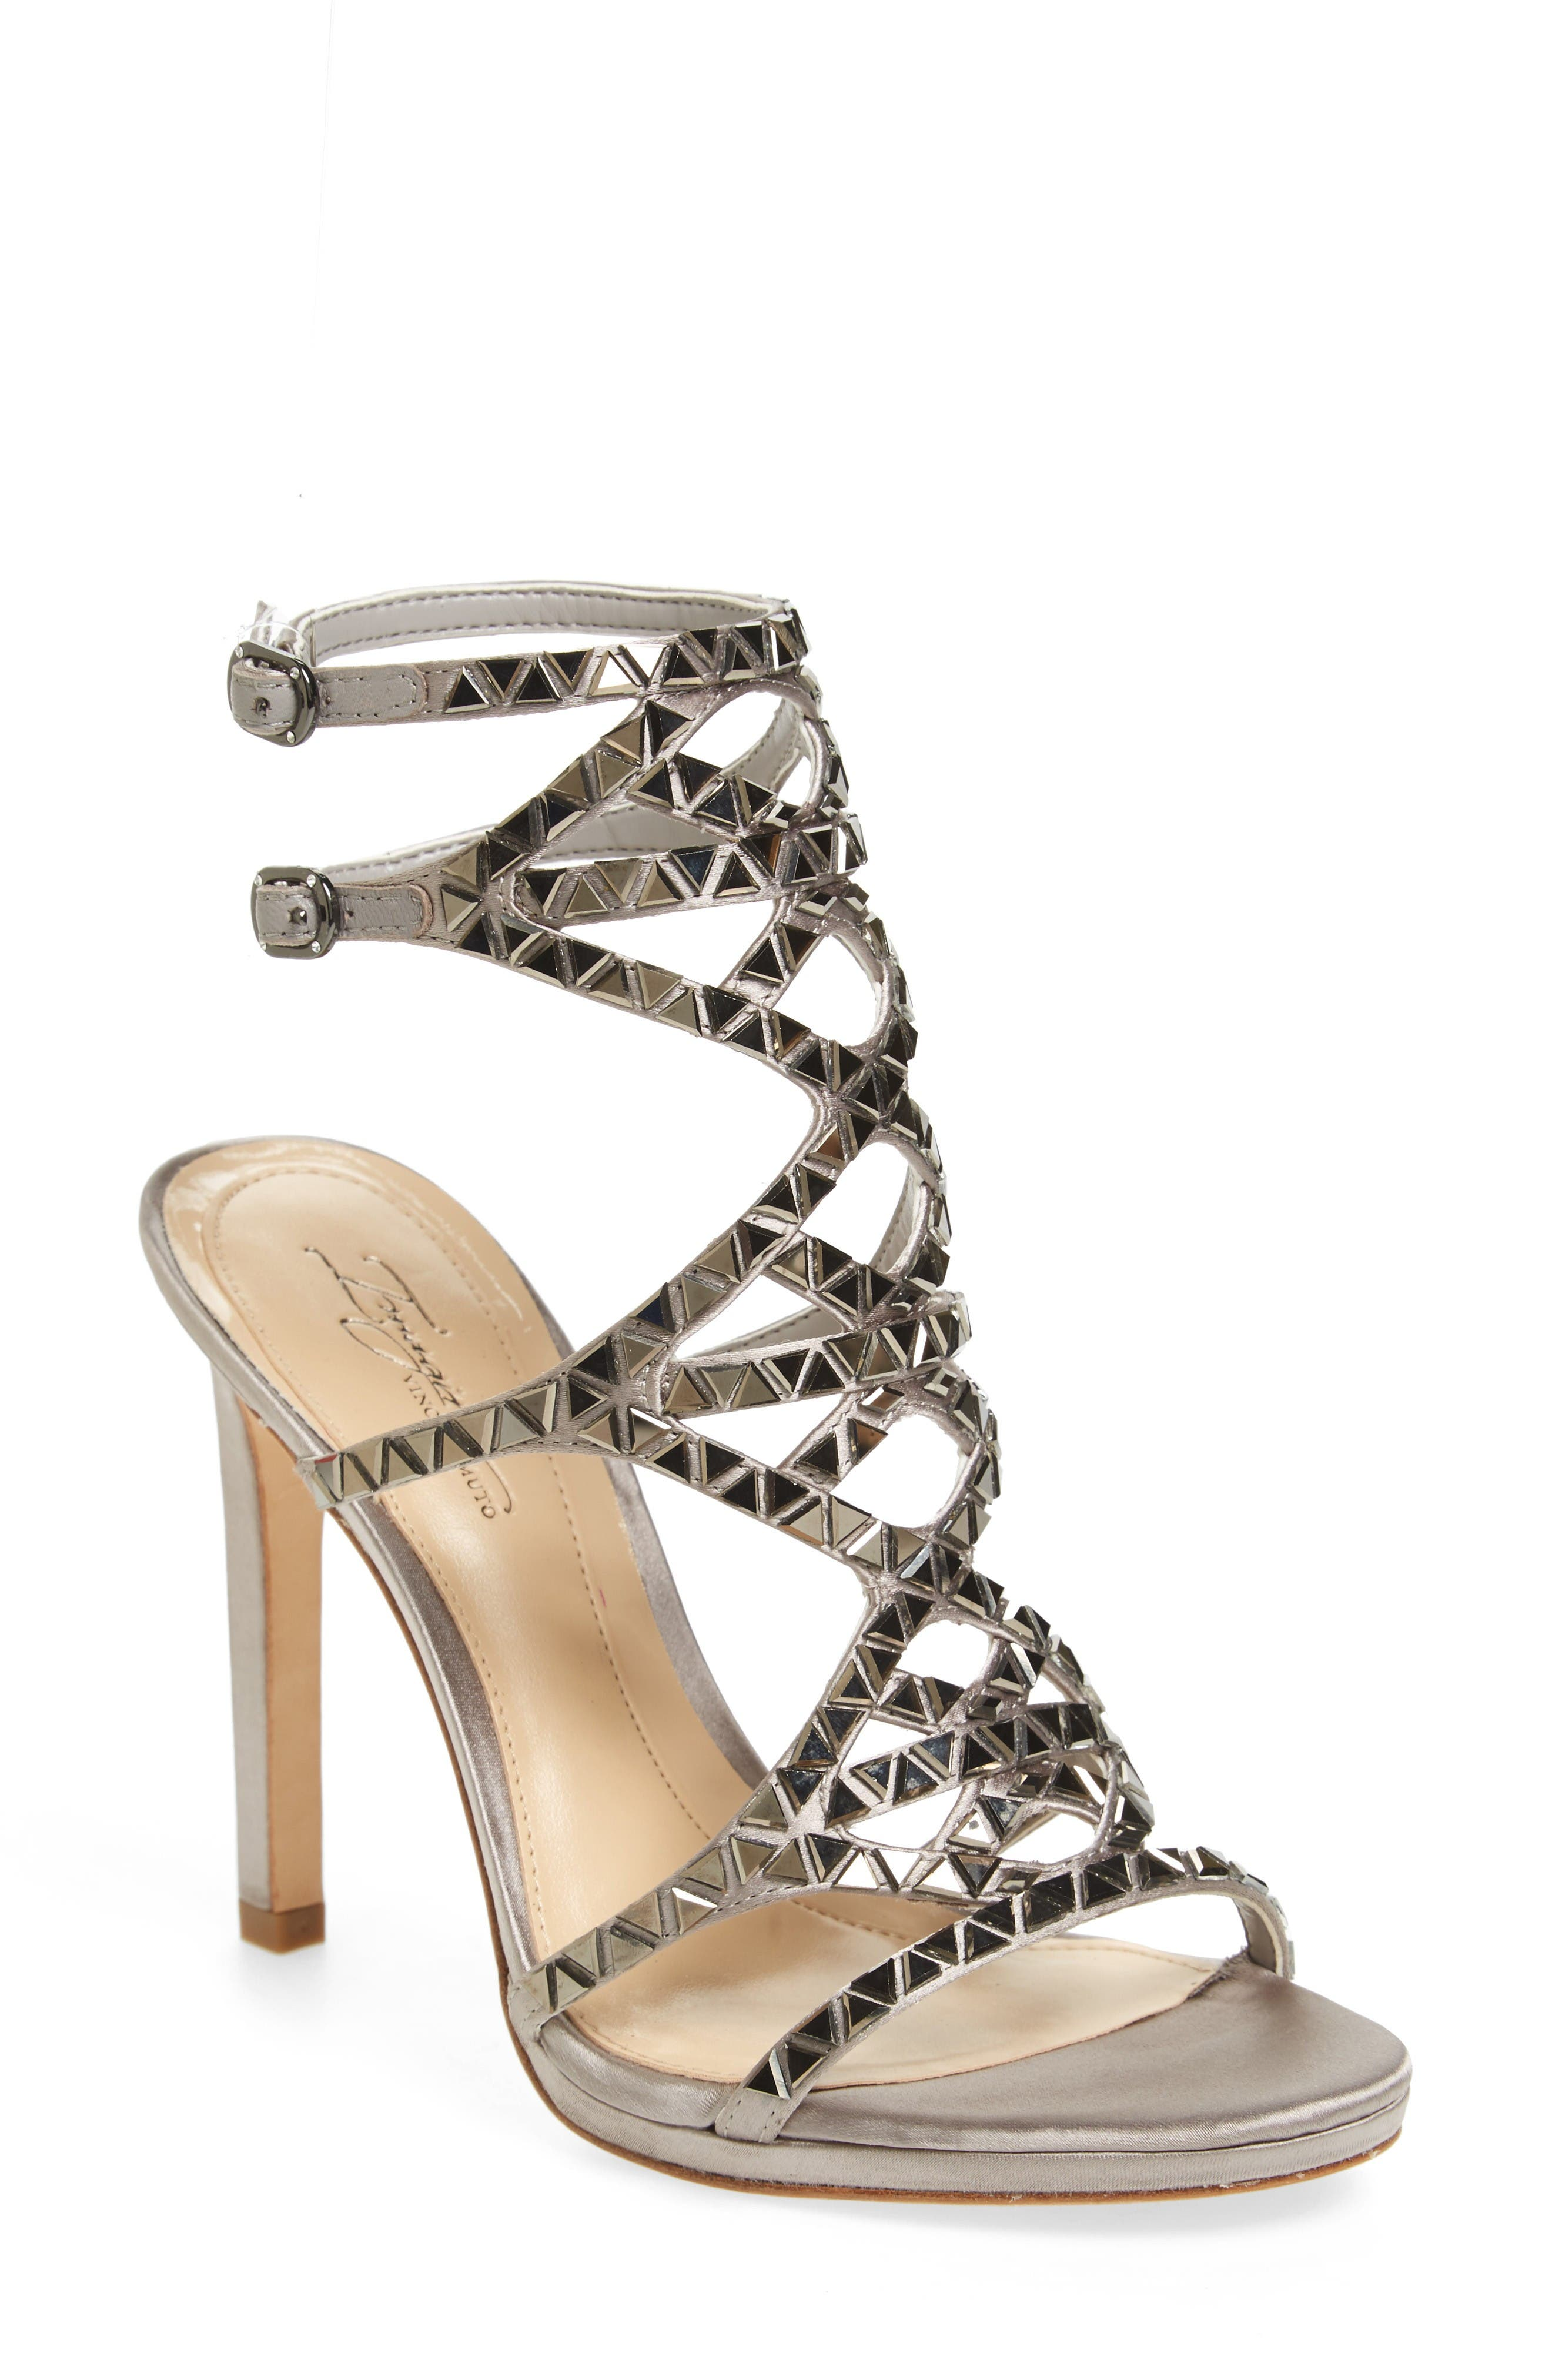 Alternate Image 1 Selected - Imagine by Vince Camuto Galvin Sandal (Women)